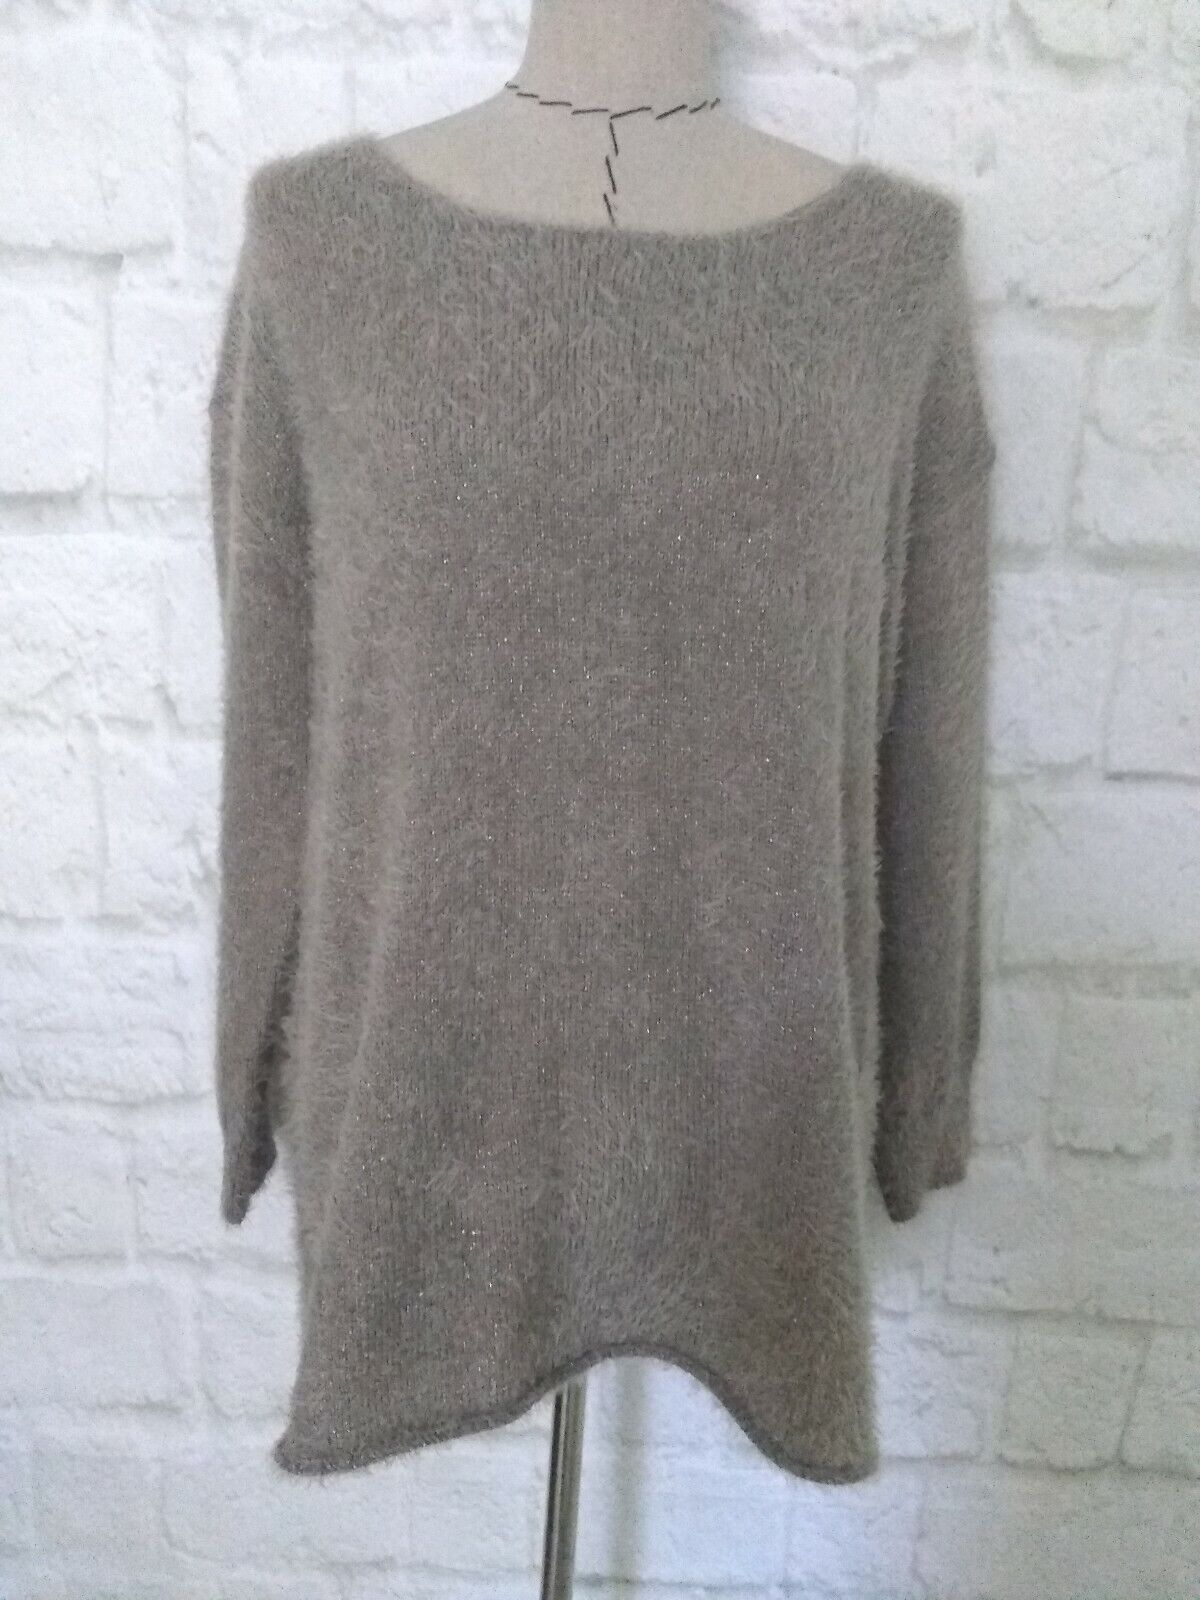 neu Soft Surroundings M sweater taupe Gold metali solid lungo sleeve fuzzy Größe